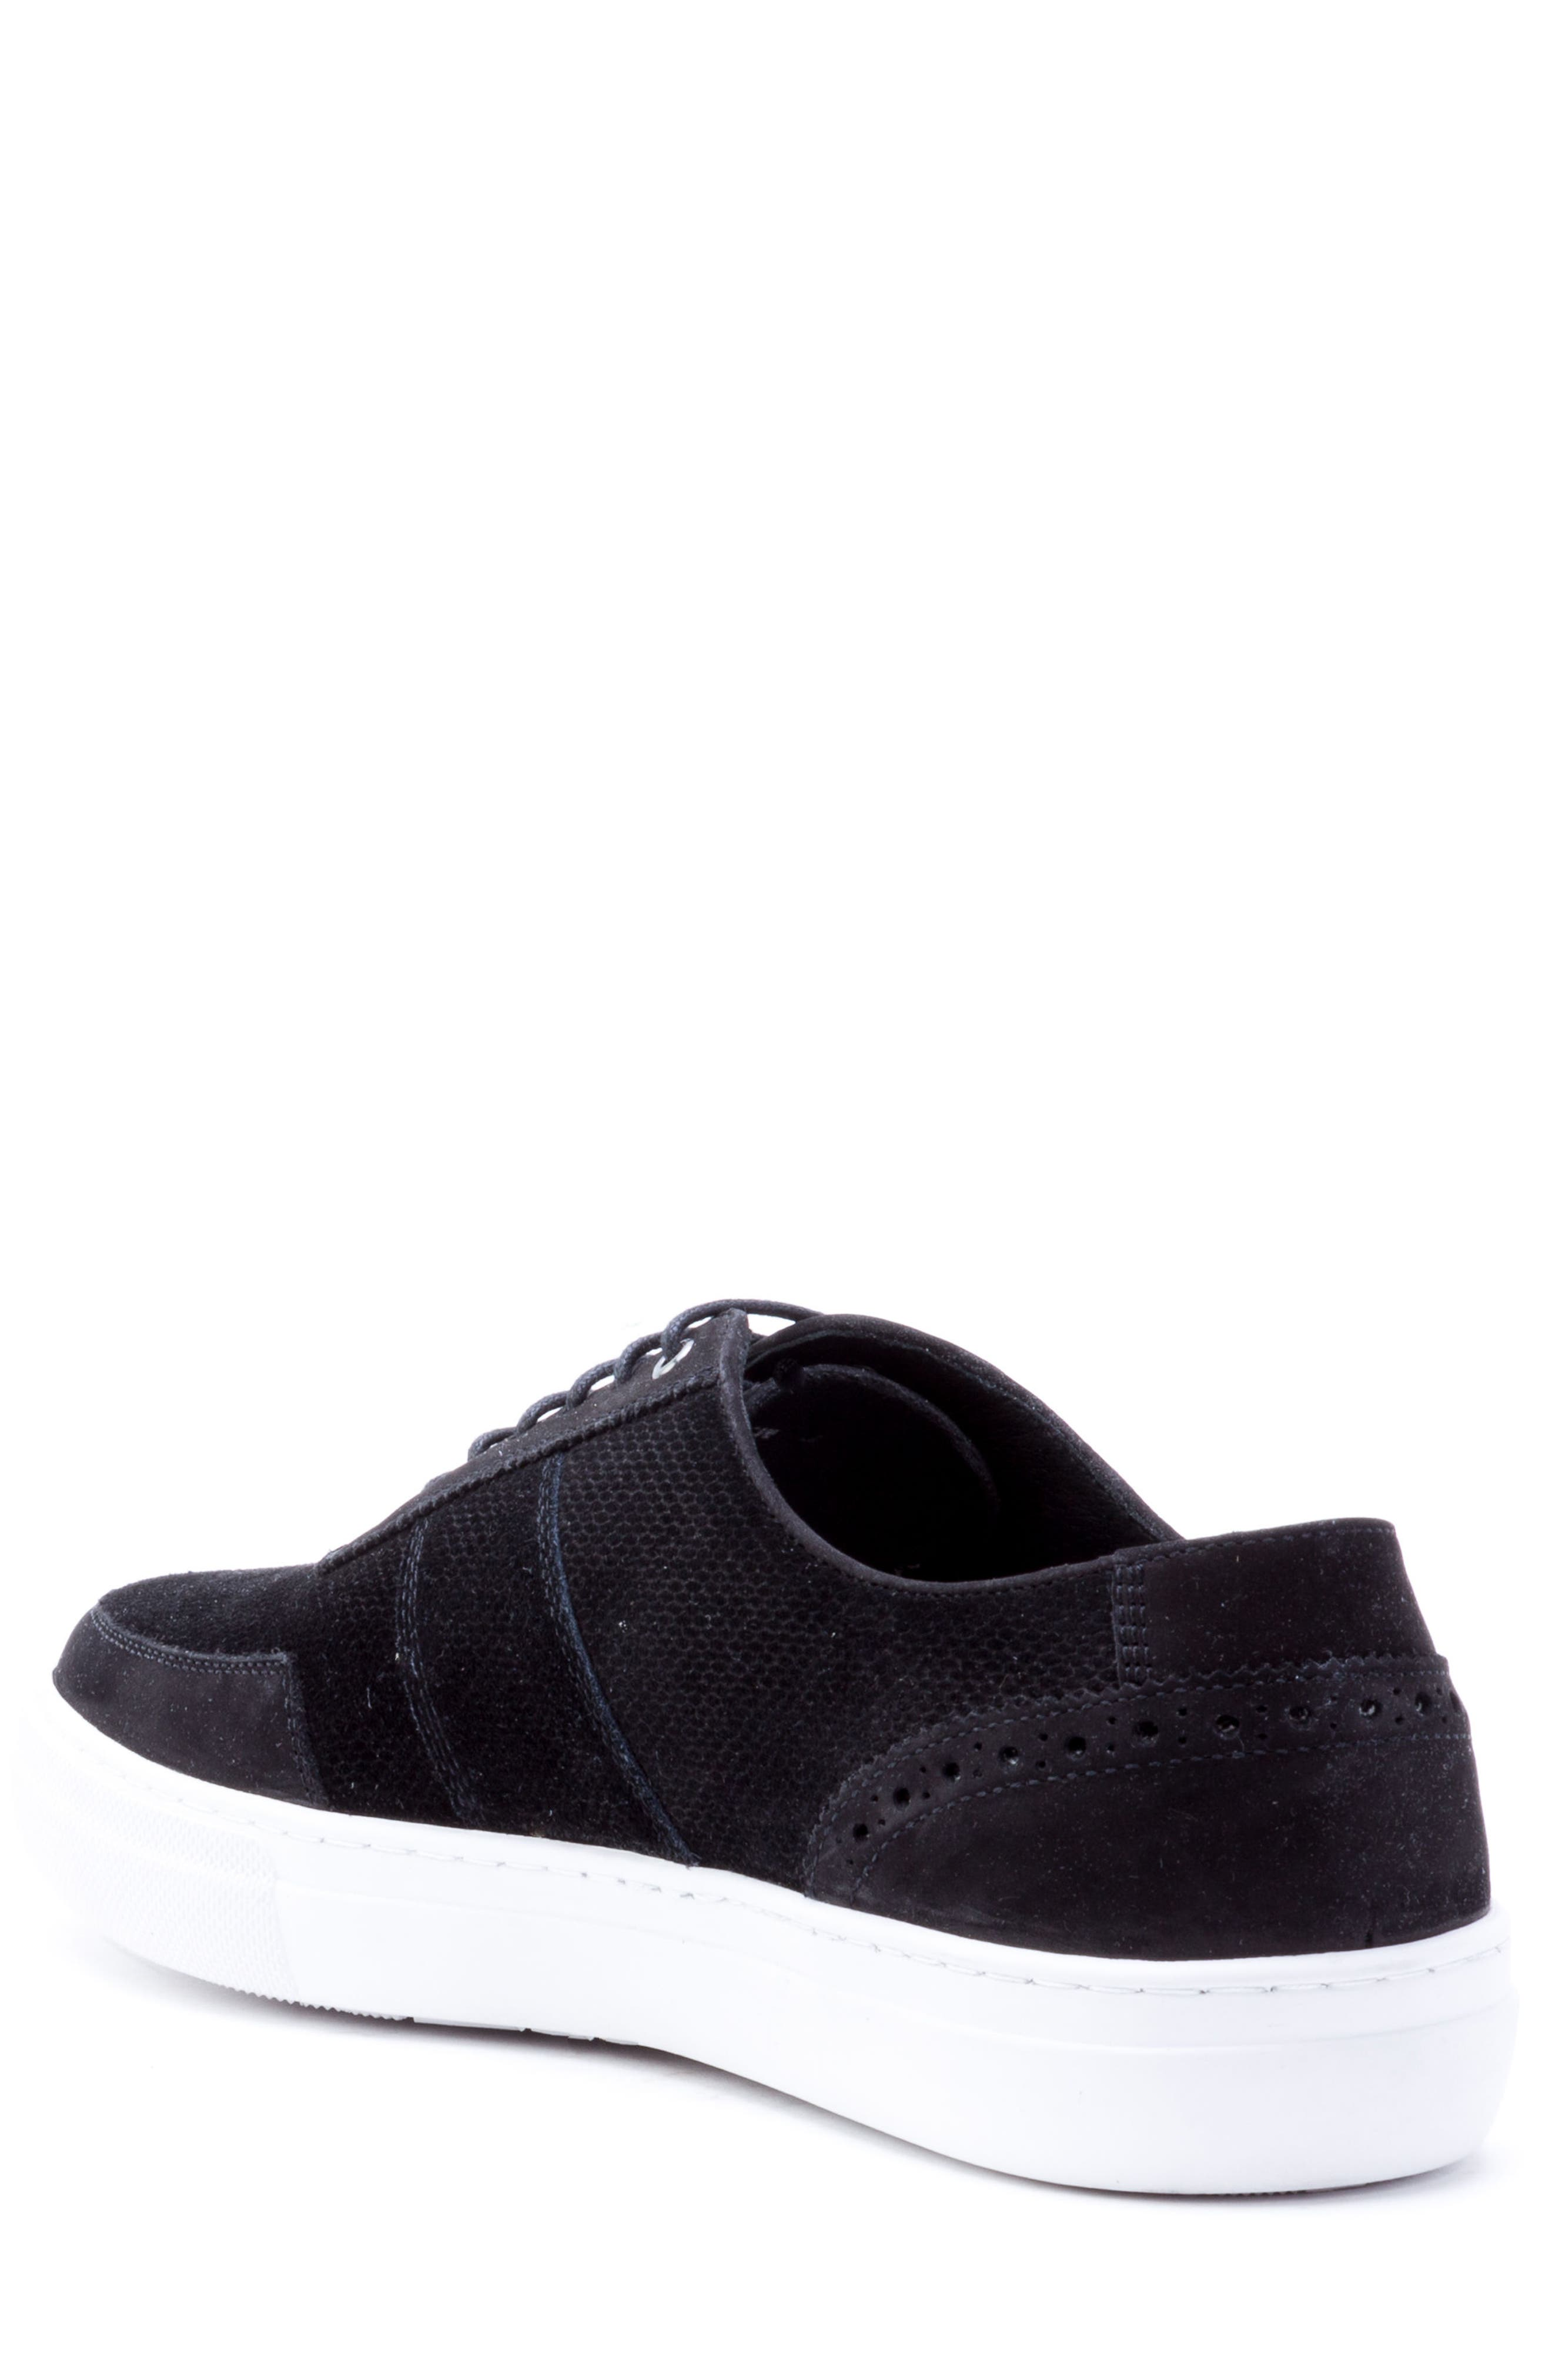 House Low Top Sneaker,                             Alternate thumbnail 2, color,                             Black Suede/ Leather